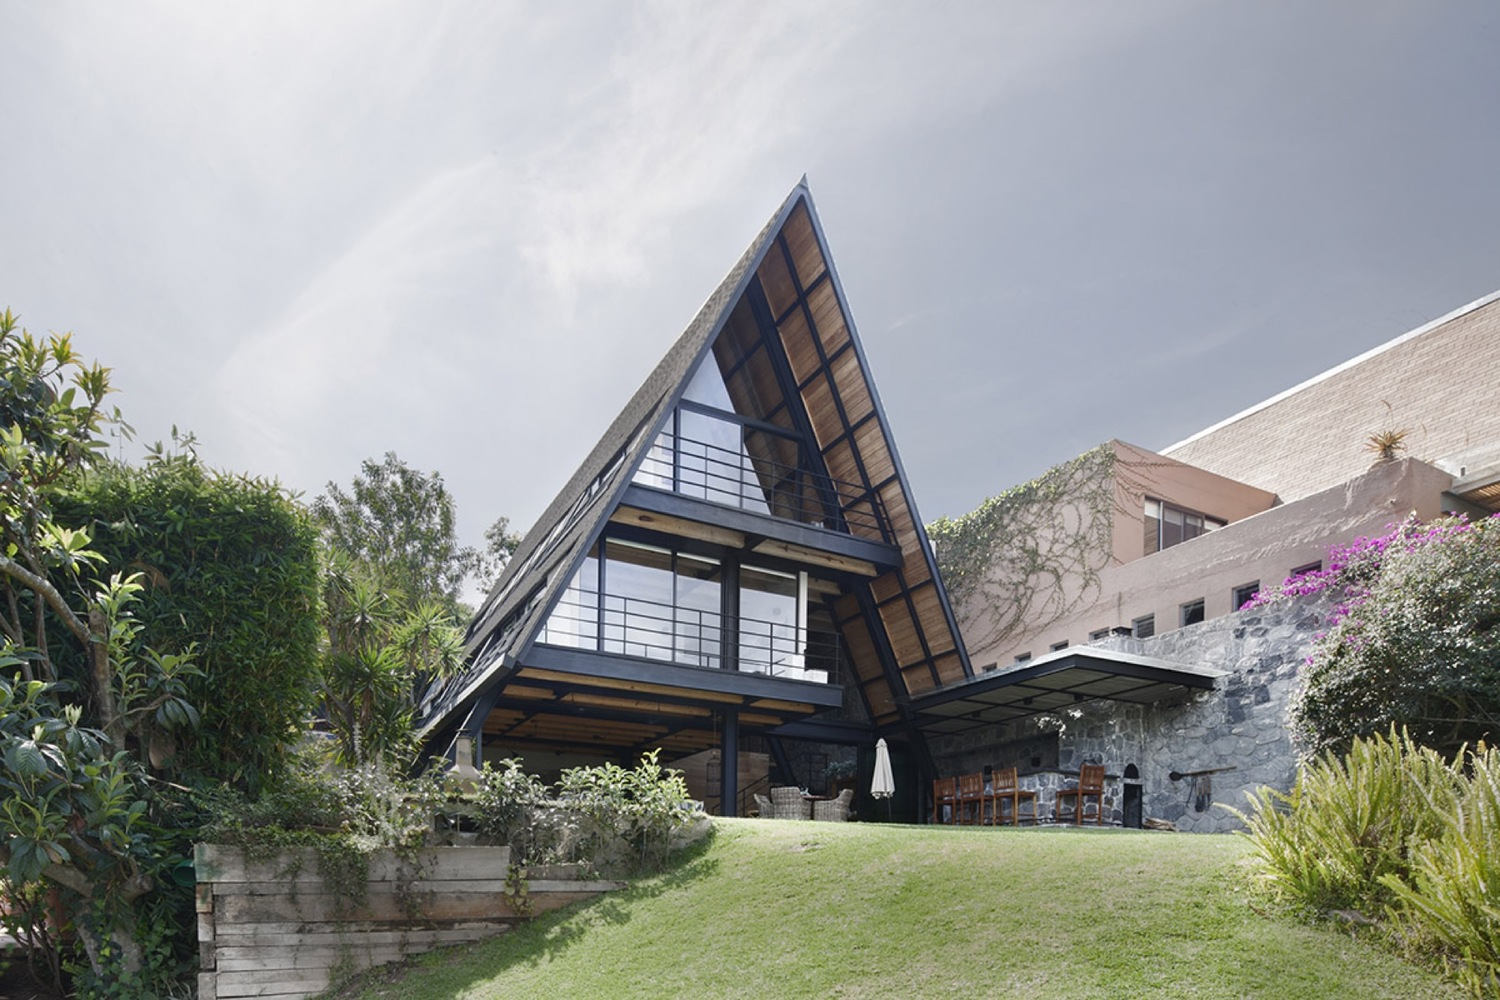 Come to Mexico, we have architecture - Casa A / Método